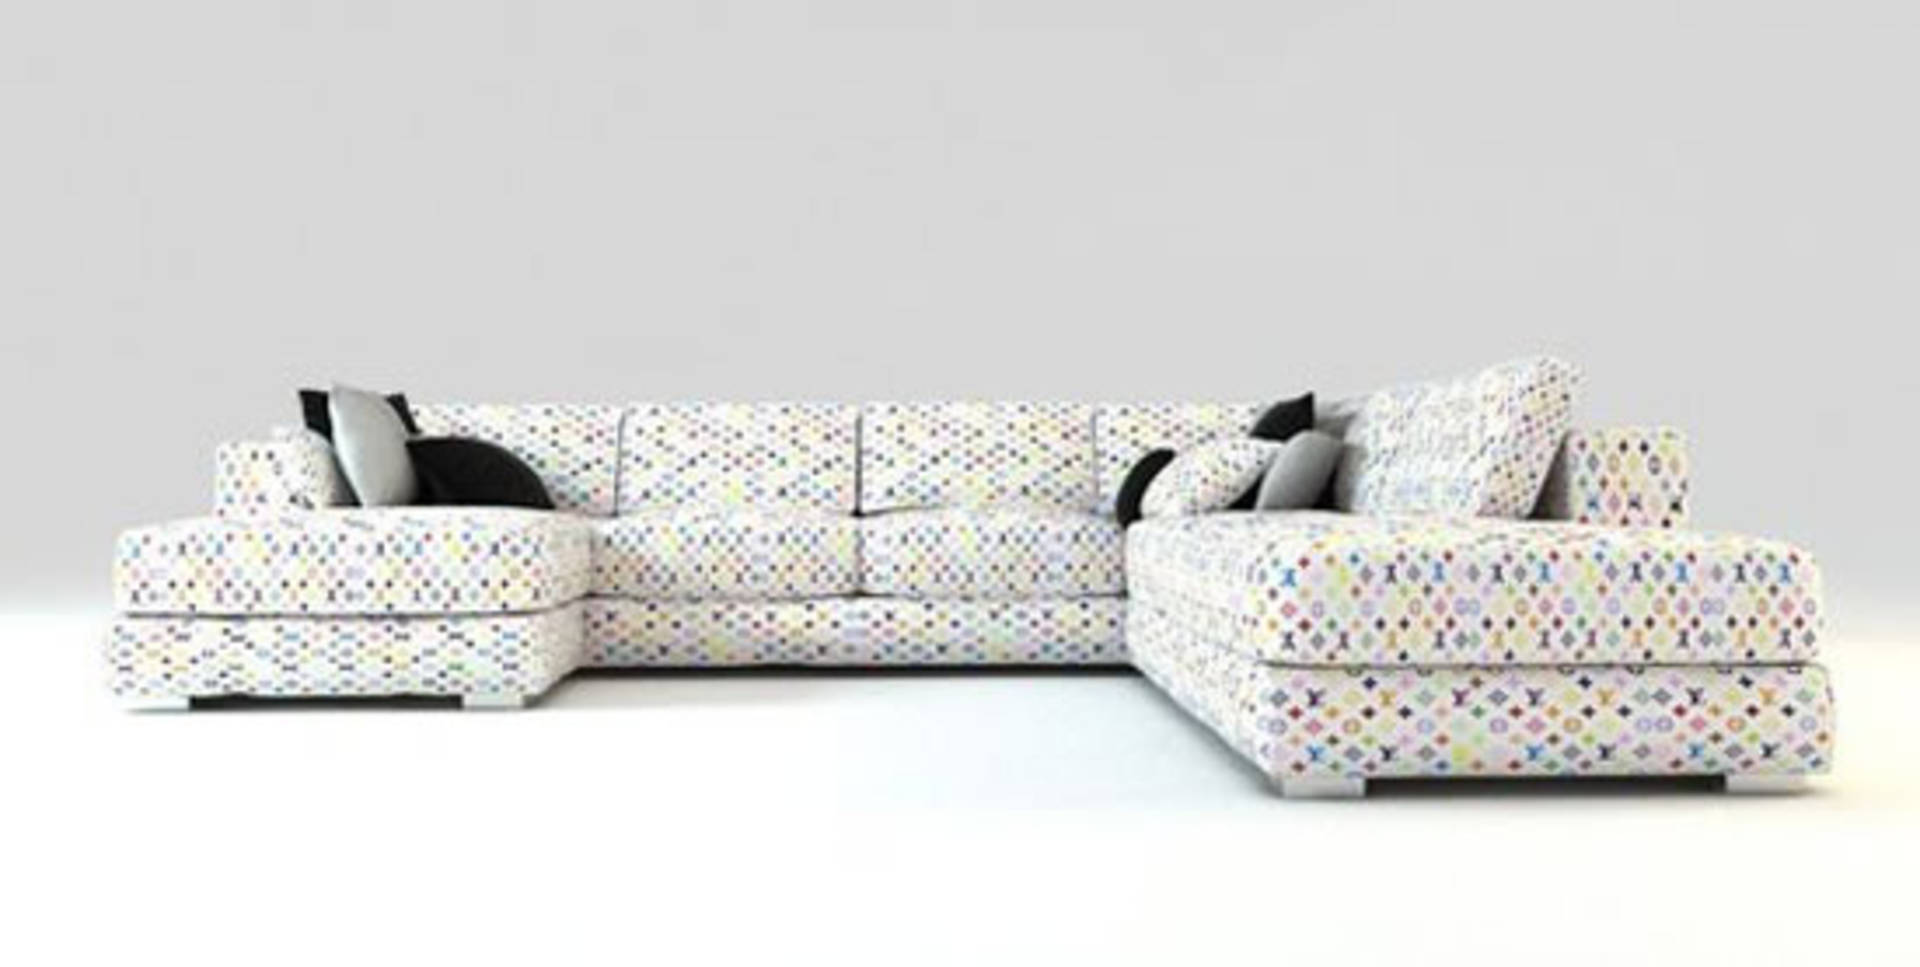 Superior ... Luxury And Glamour Louis Vuitton Sofas By Jason Phillips ...